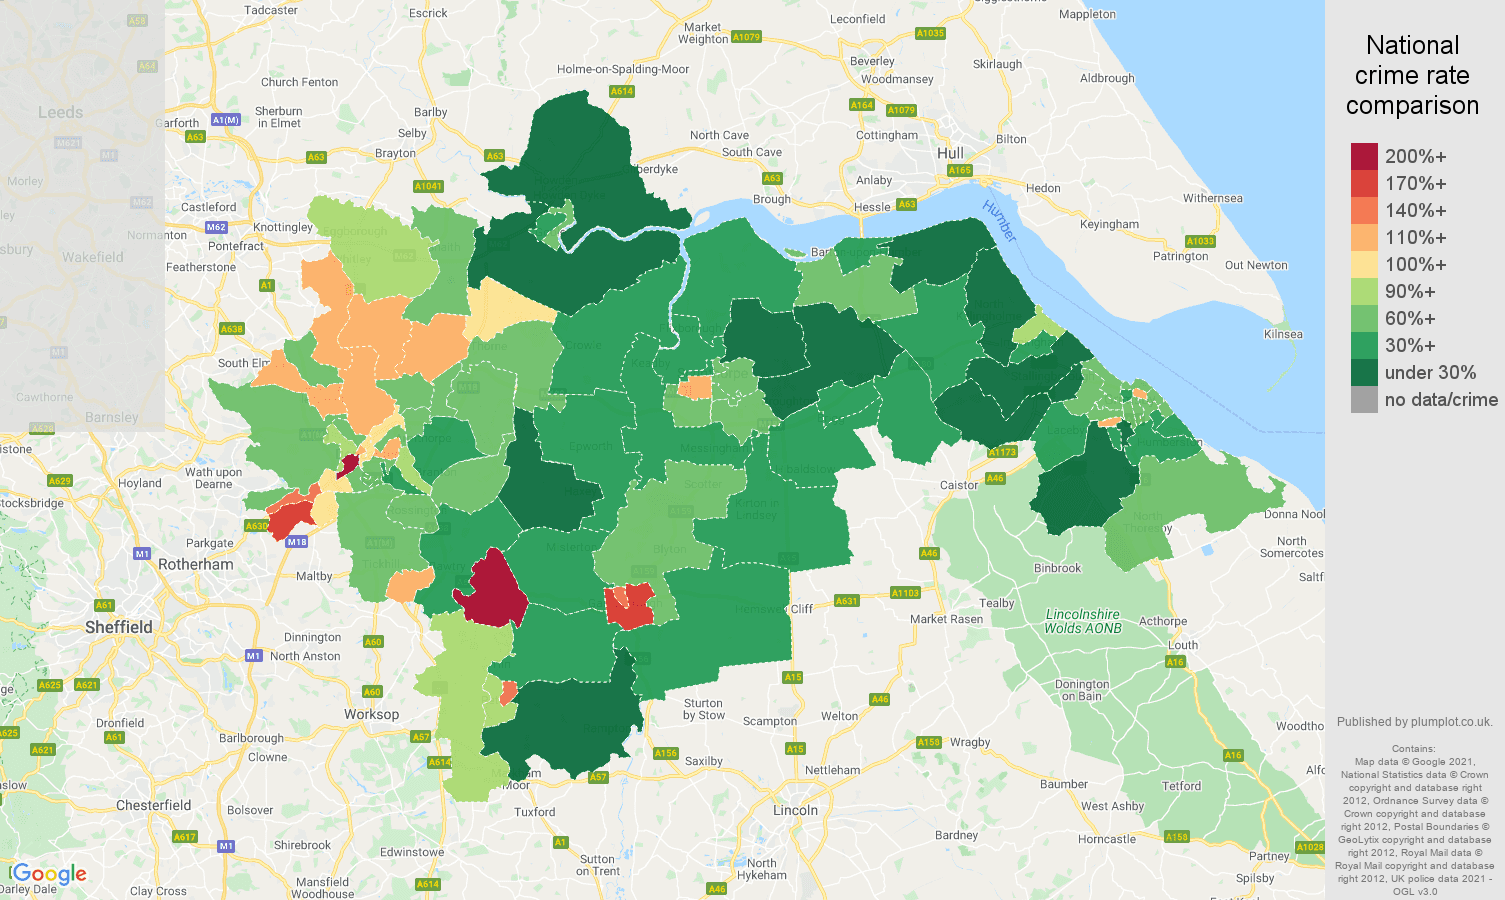 Doncaster antisocial behaviour crime statistics in maps and graphs.